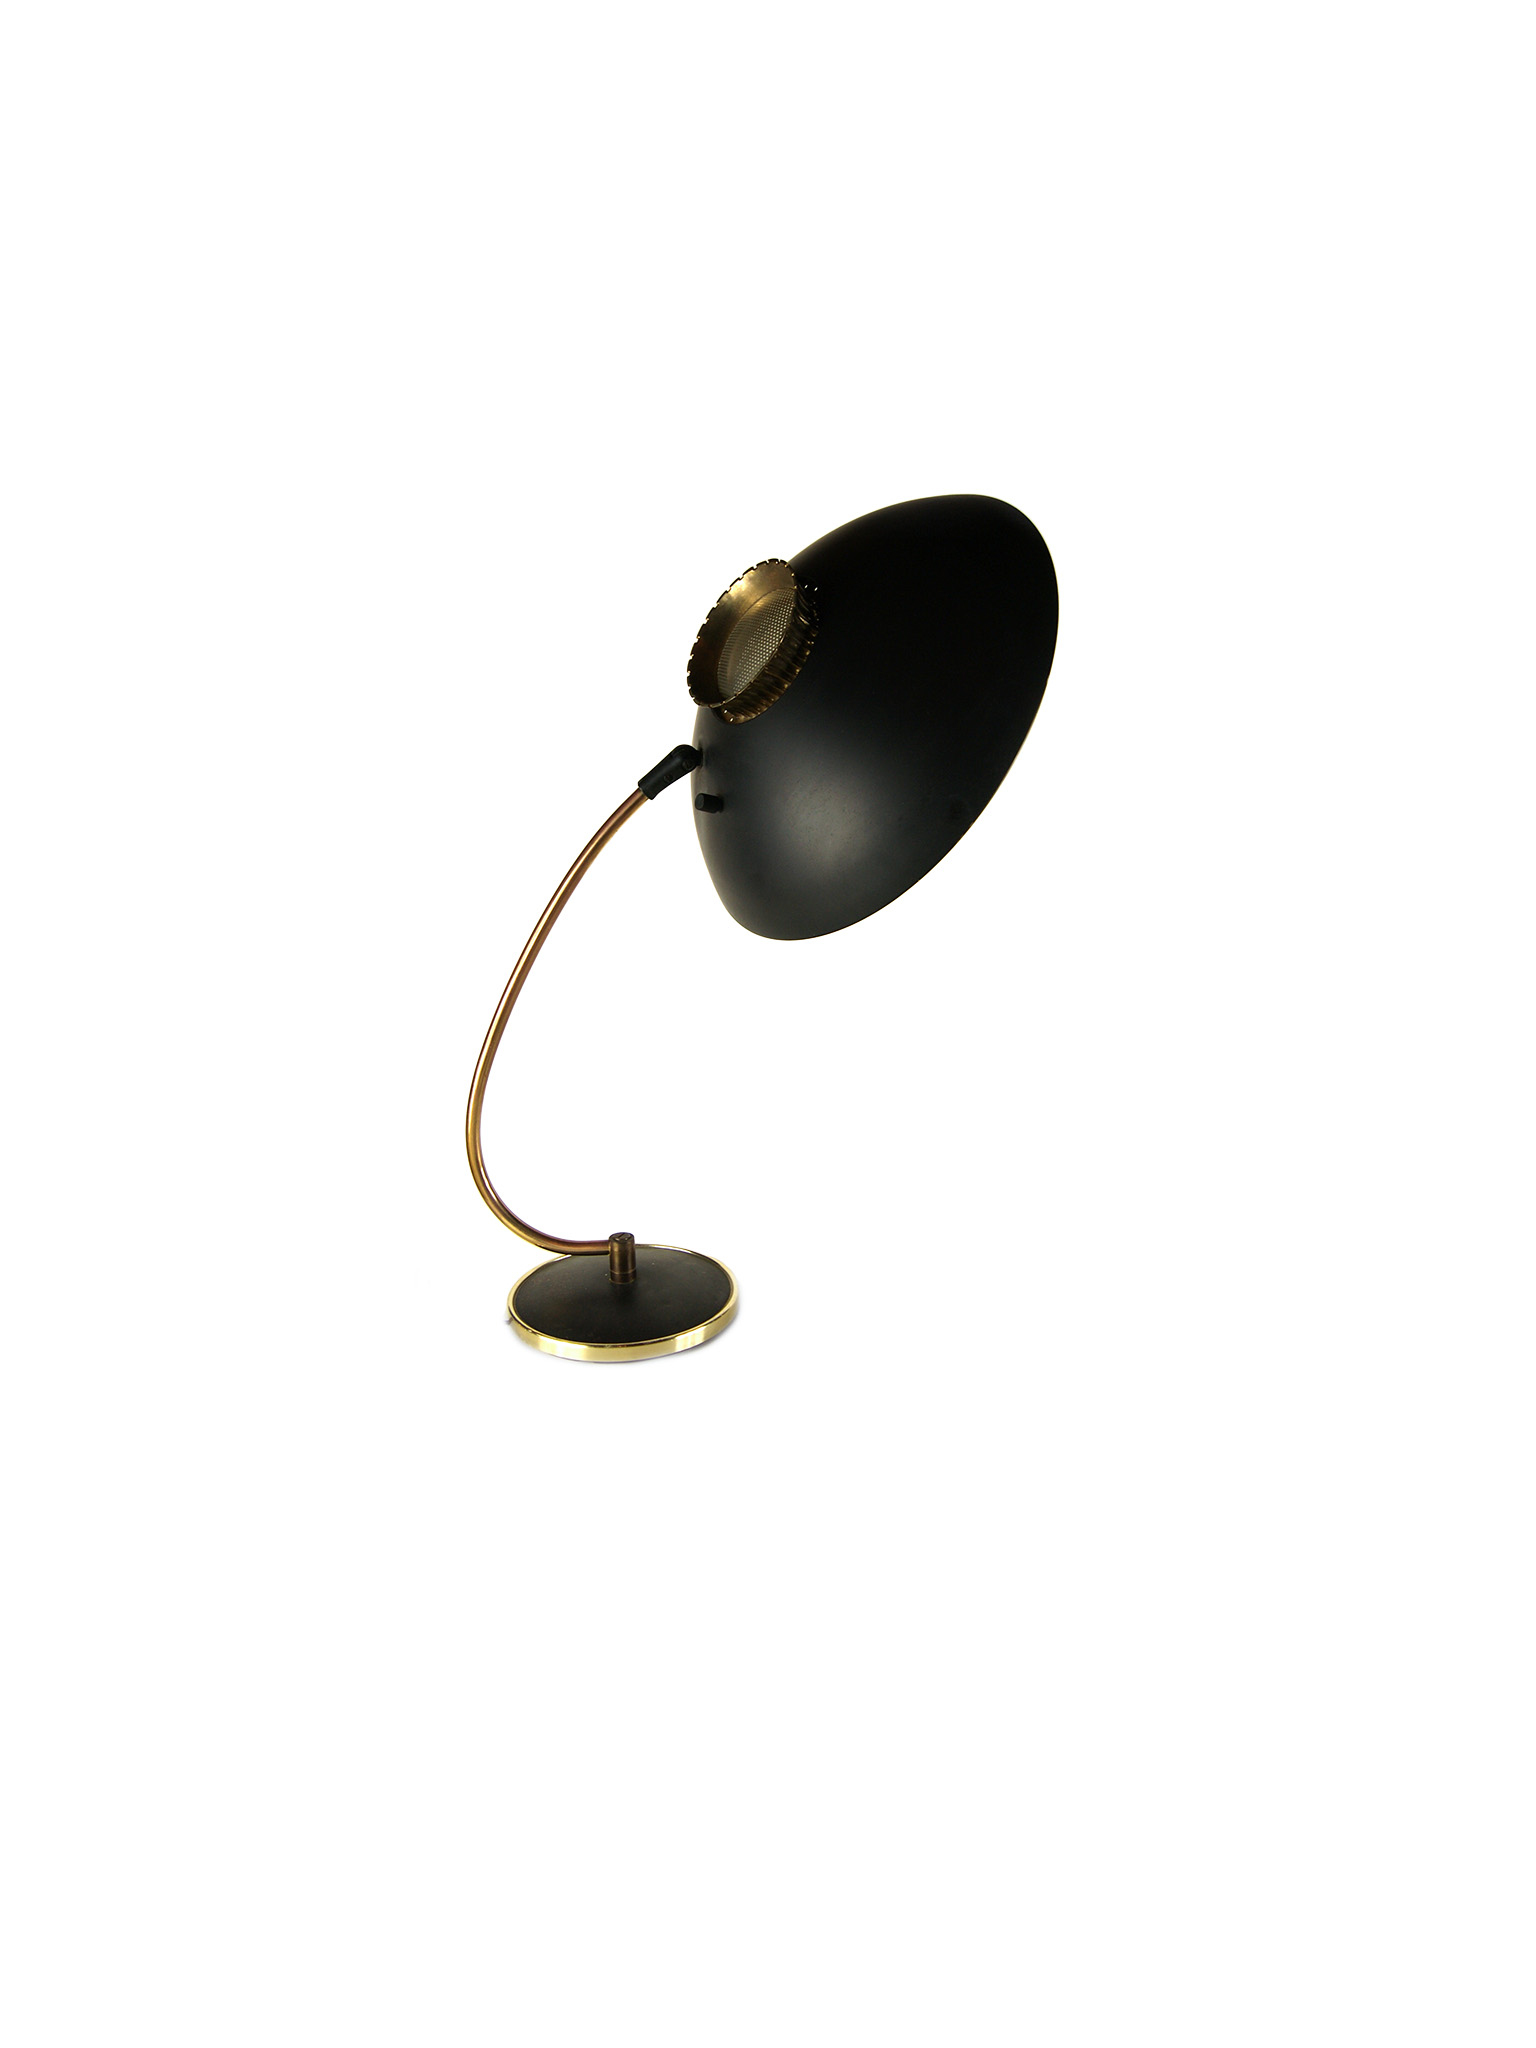 GERALD THURSTON DESK LAMP